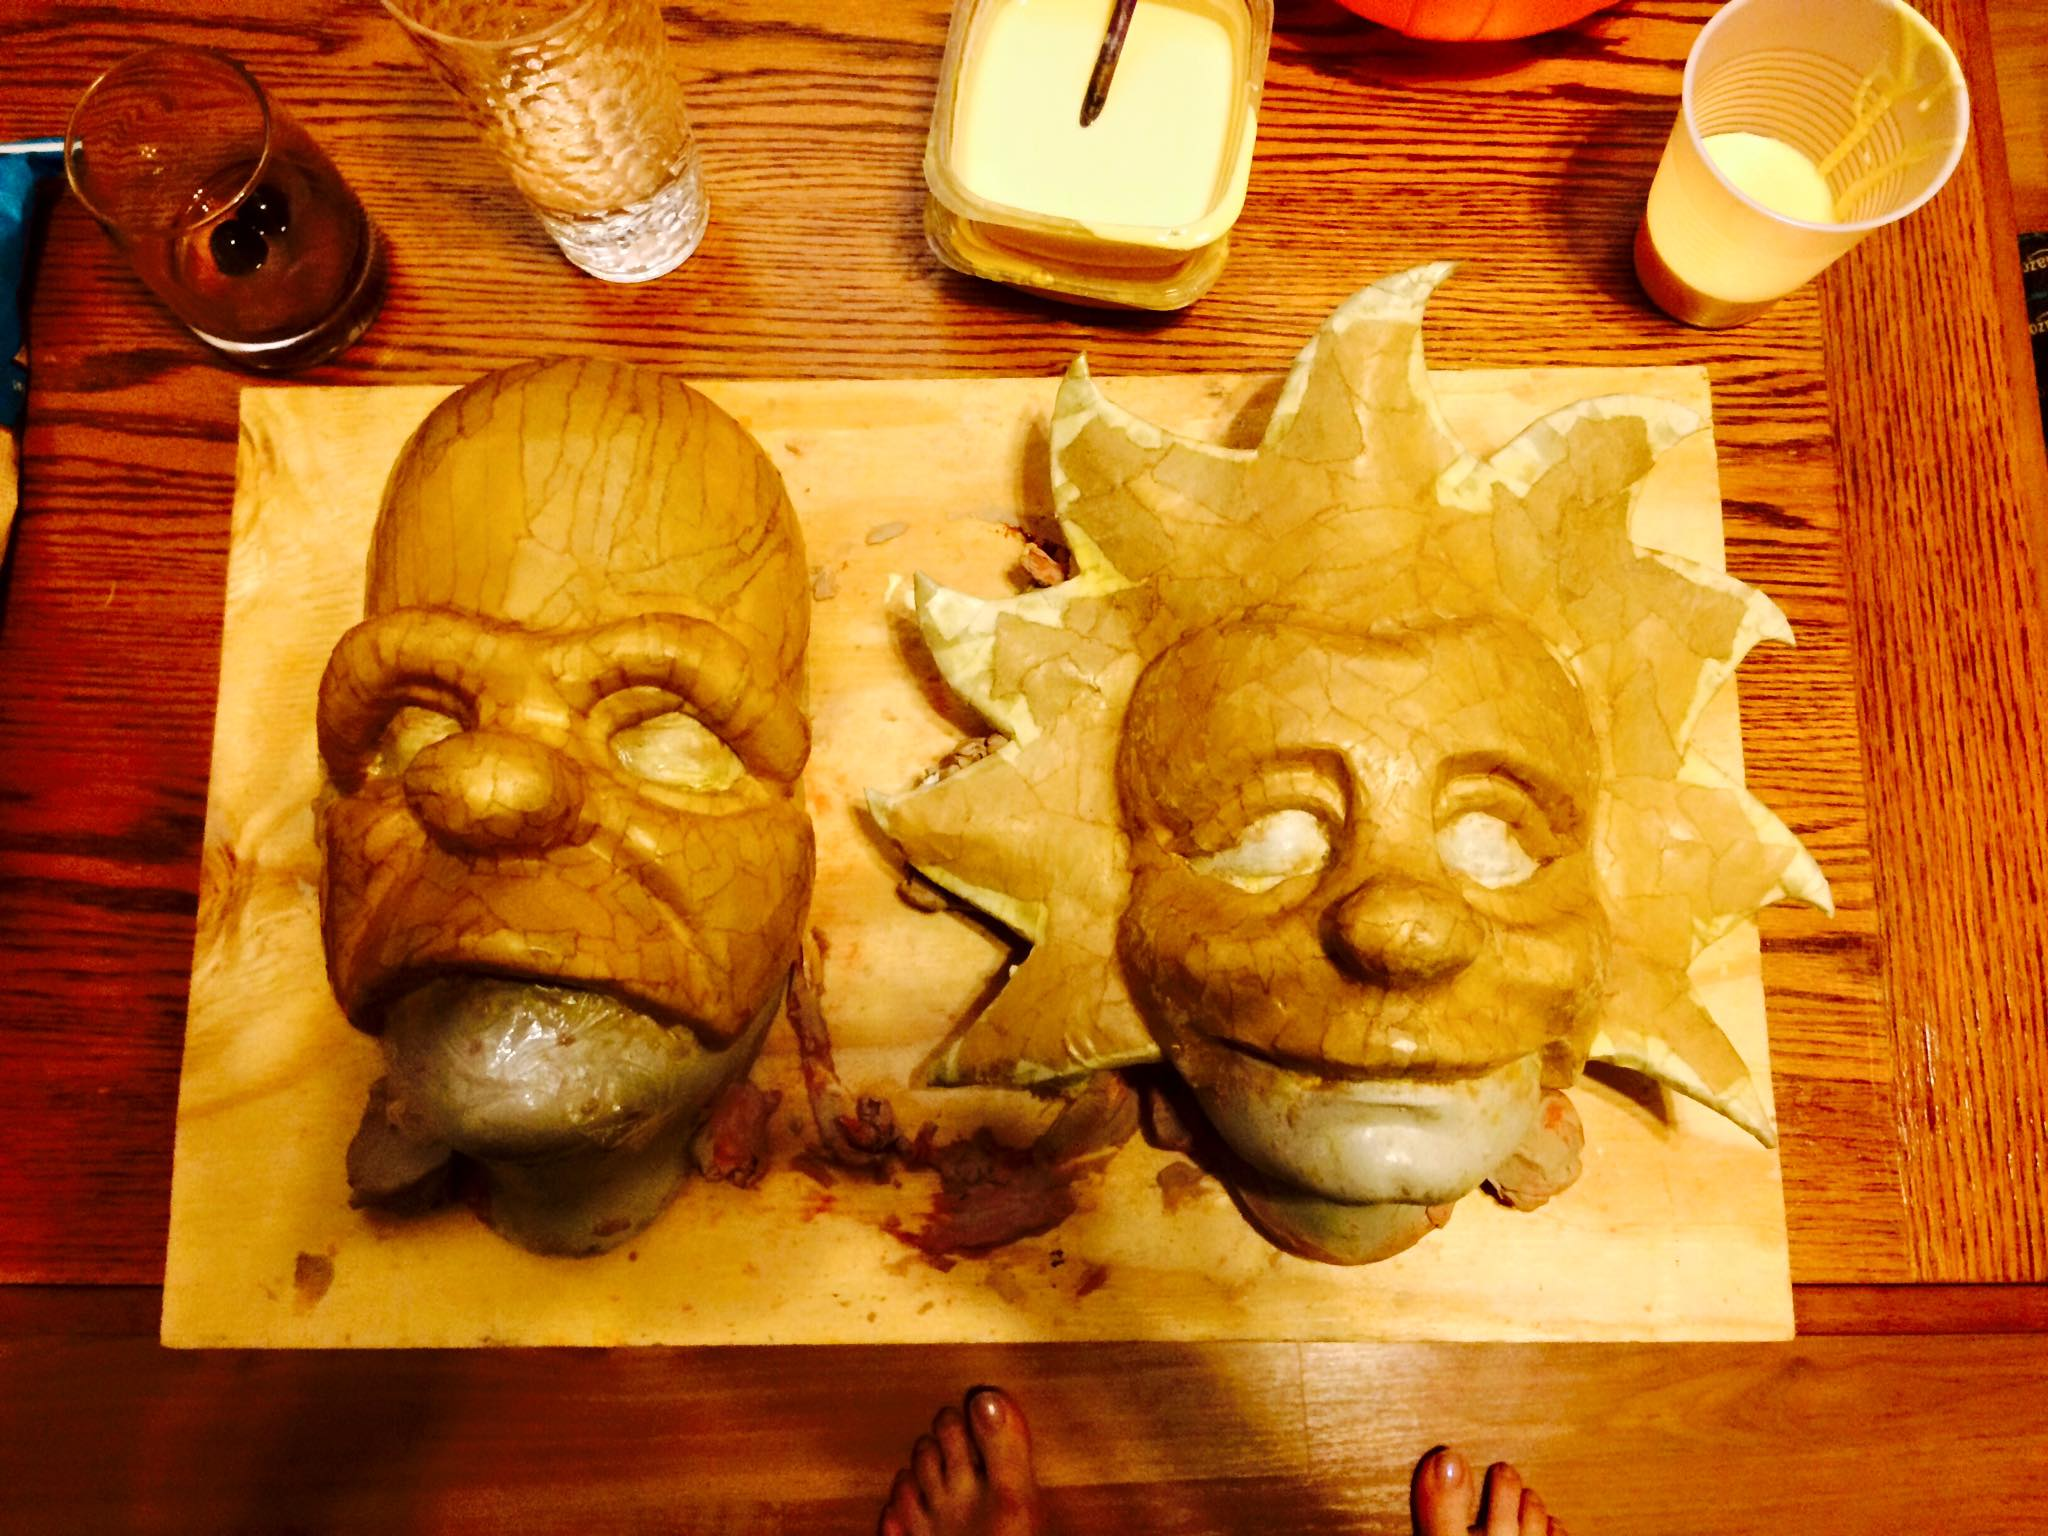 Homer and Lisa in process